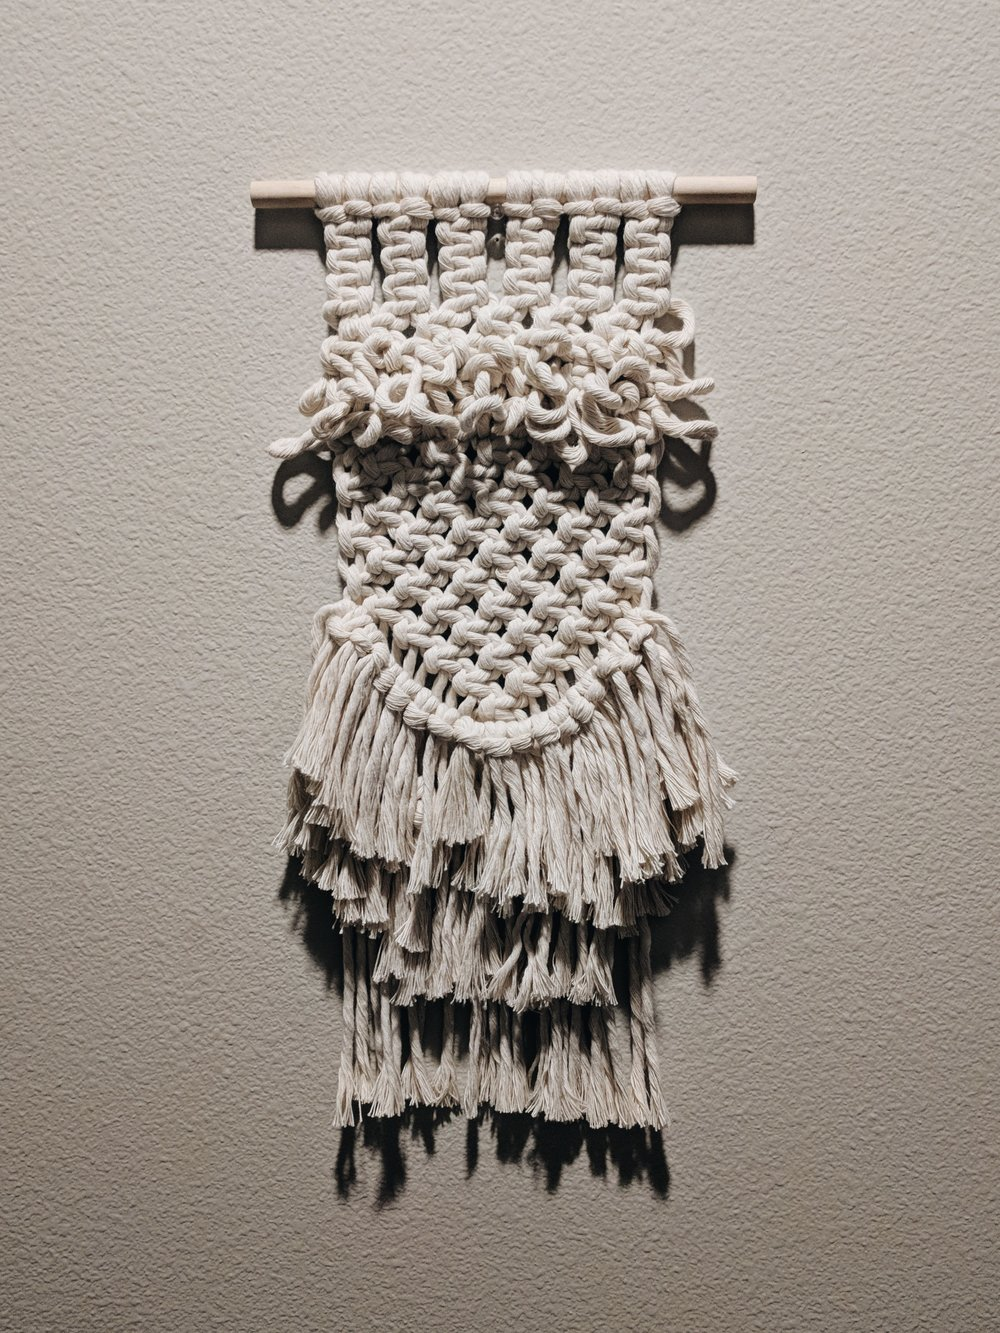 traditional_macrame_blacksheepmade.jpg